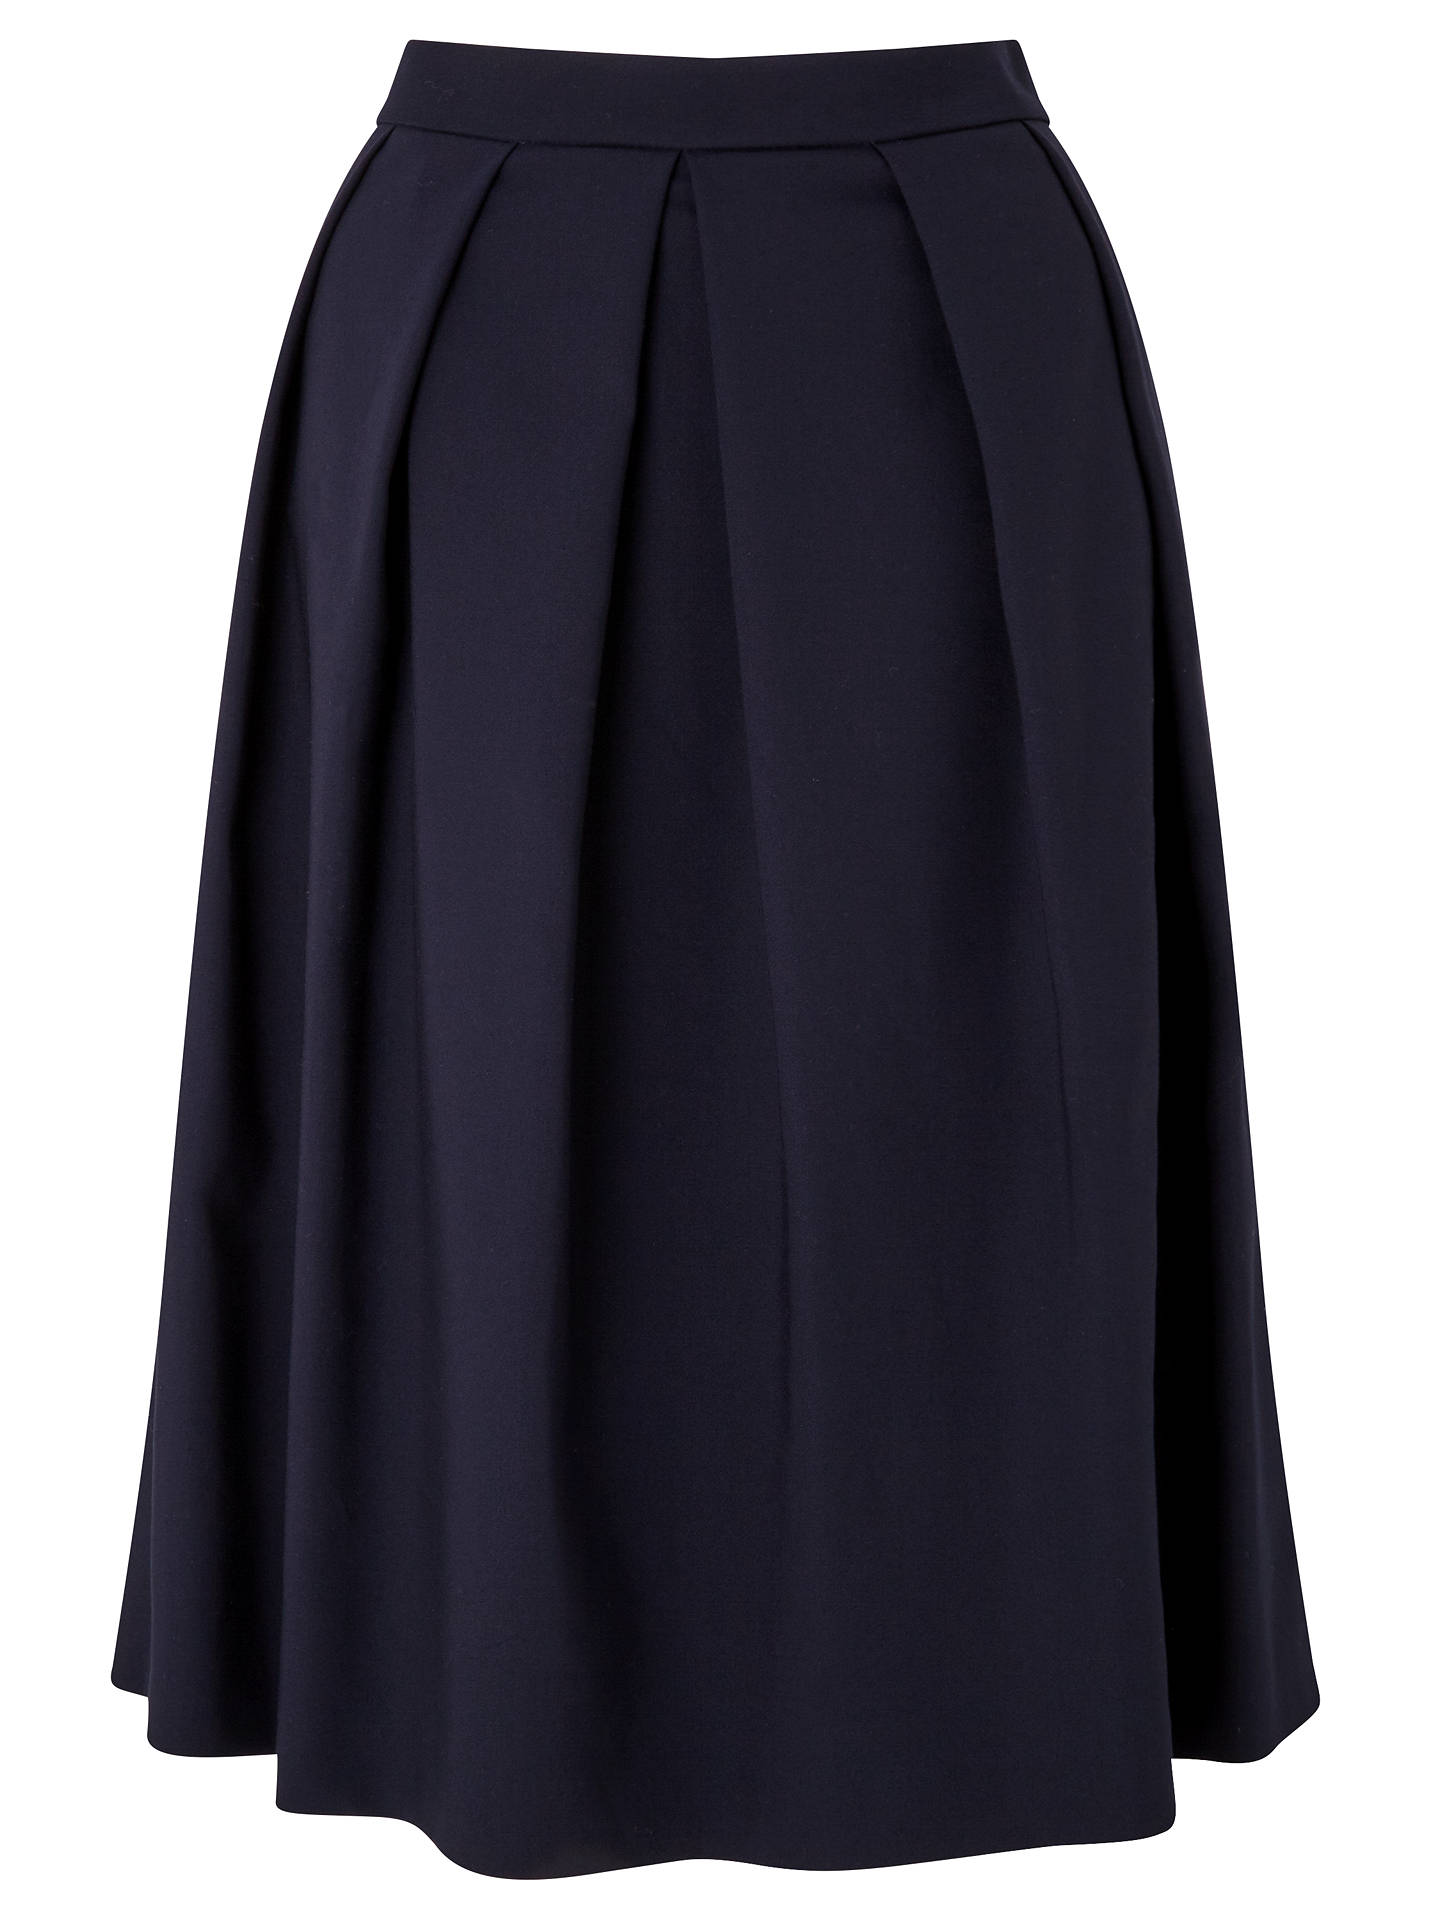 Buy John Lewis Fredericka Cotton Skirt, Navy, 8 Online at johnlewis.com